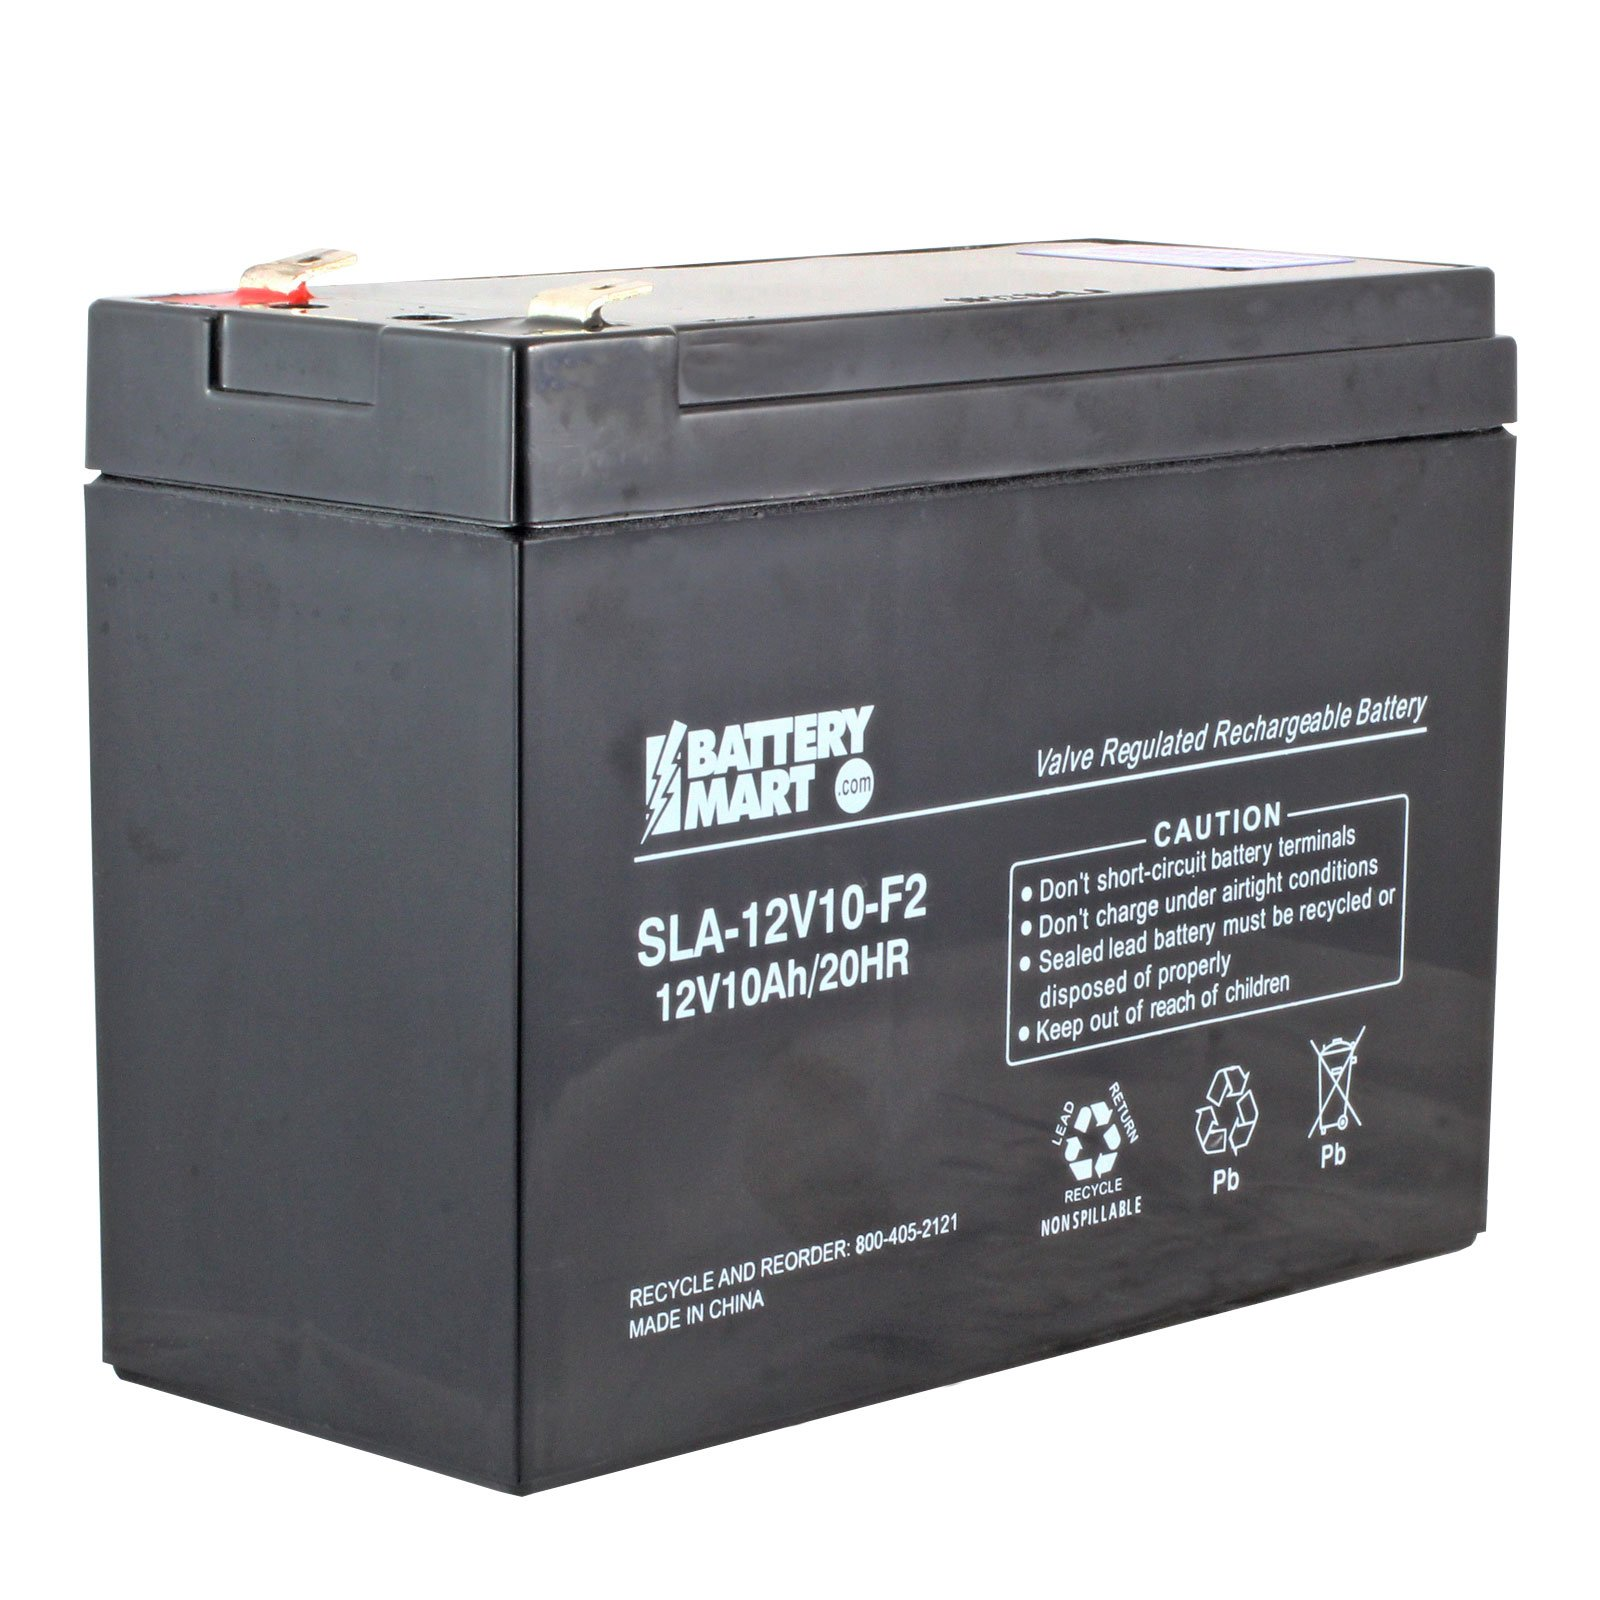 Solar Rechargeable Batteries >> 12 Volt 10 Ah Sealed Lead Acid Rechargeable Battery: BatteryMart.com